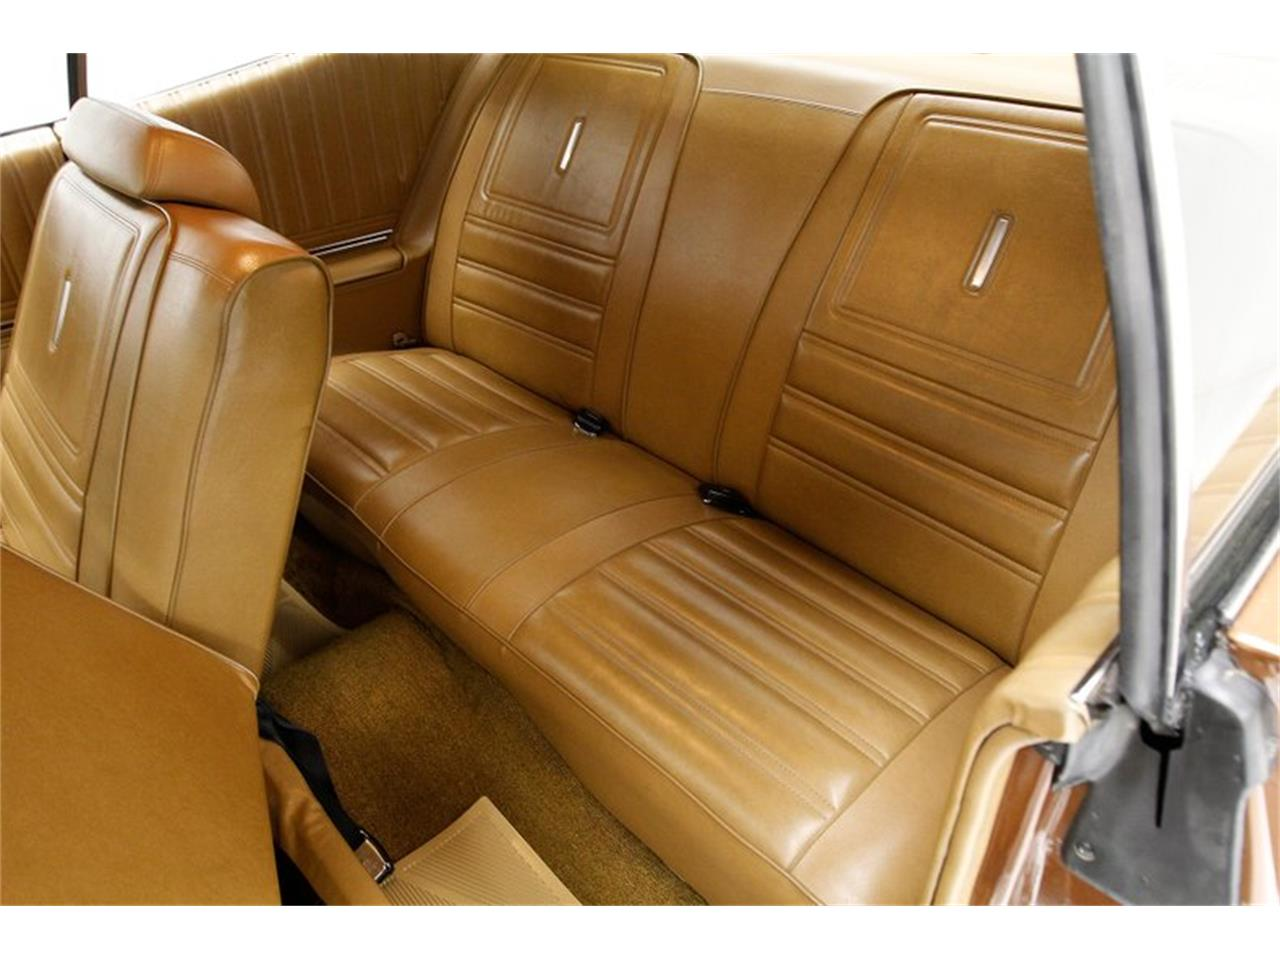 1972 Plymouth Satellite for sale in Morgantown, PA – photo 27